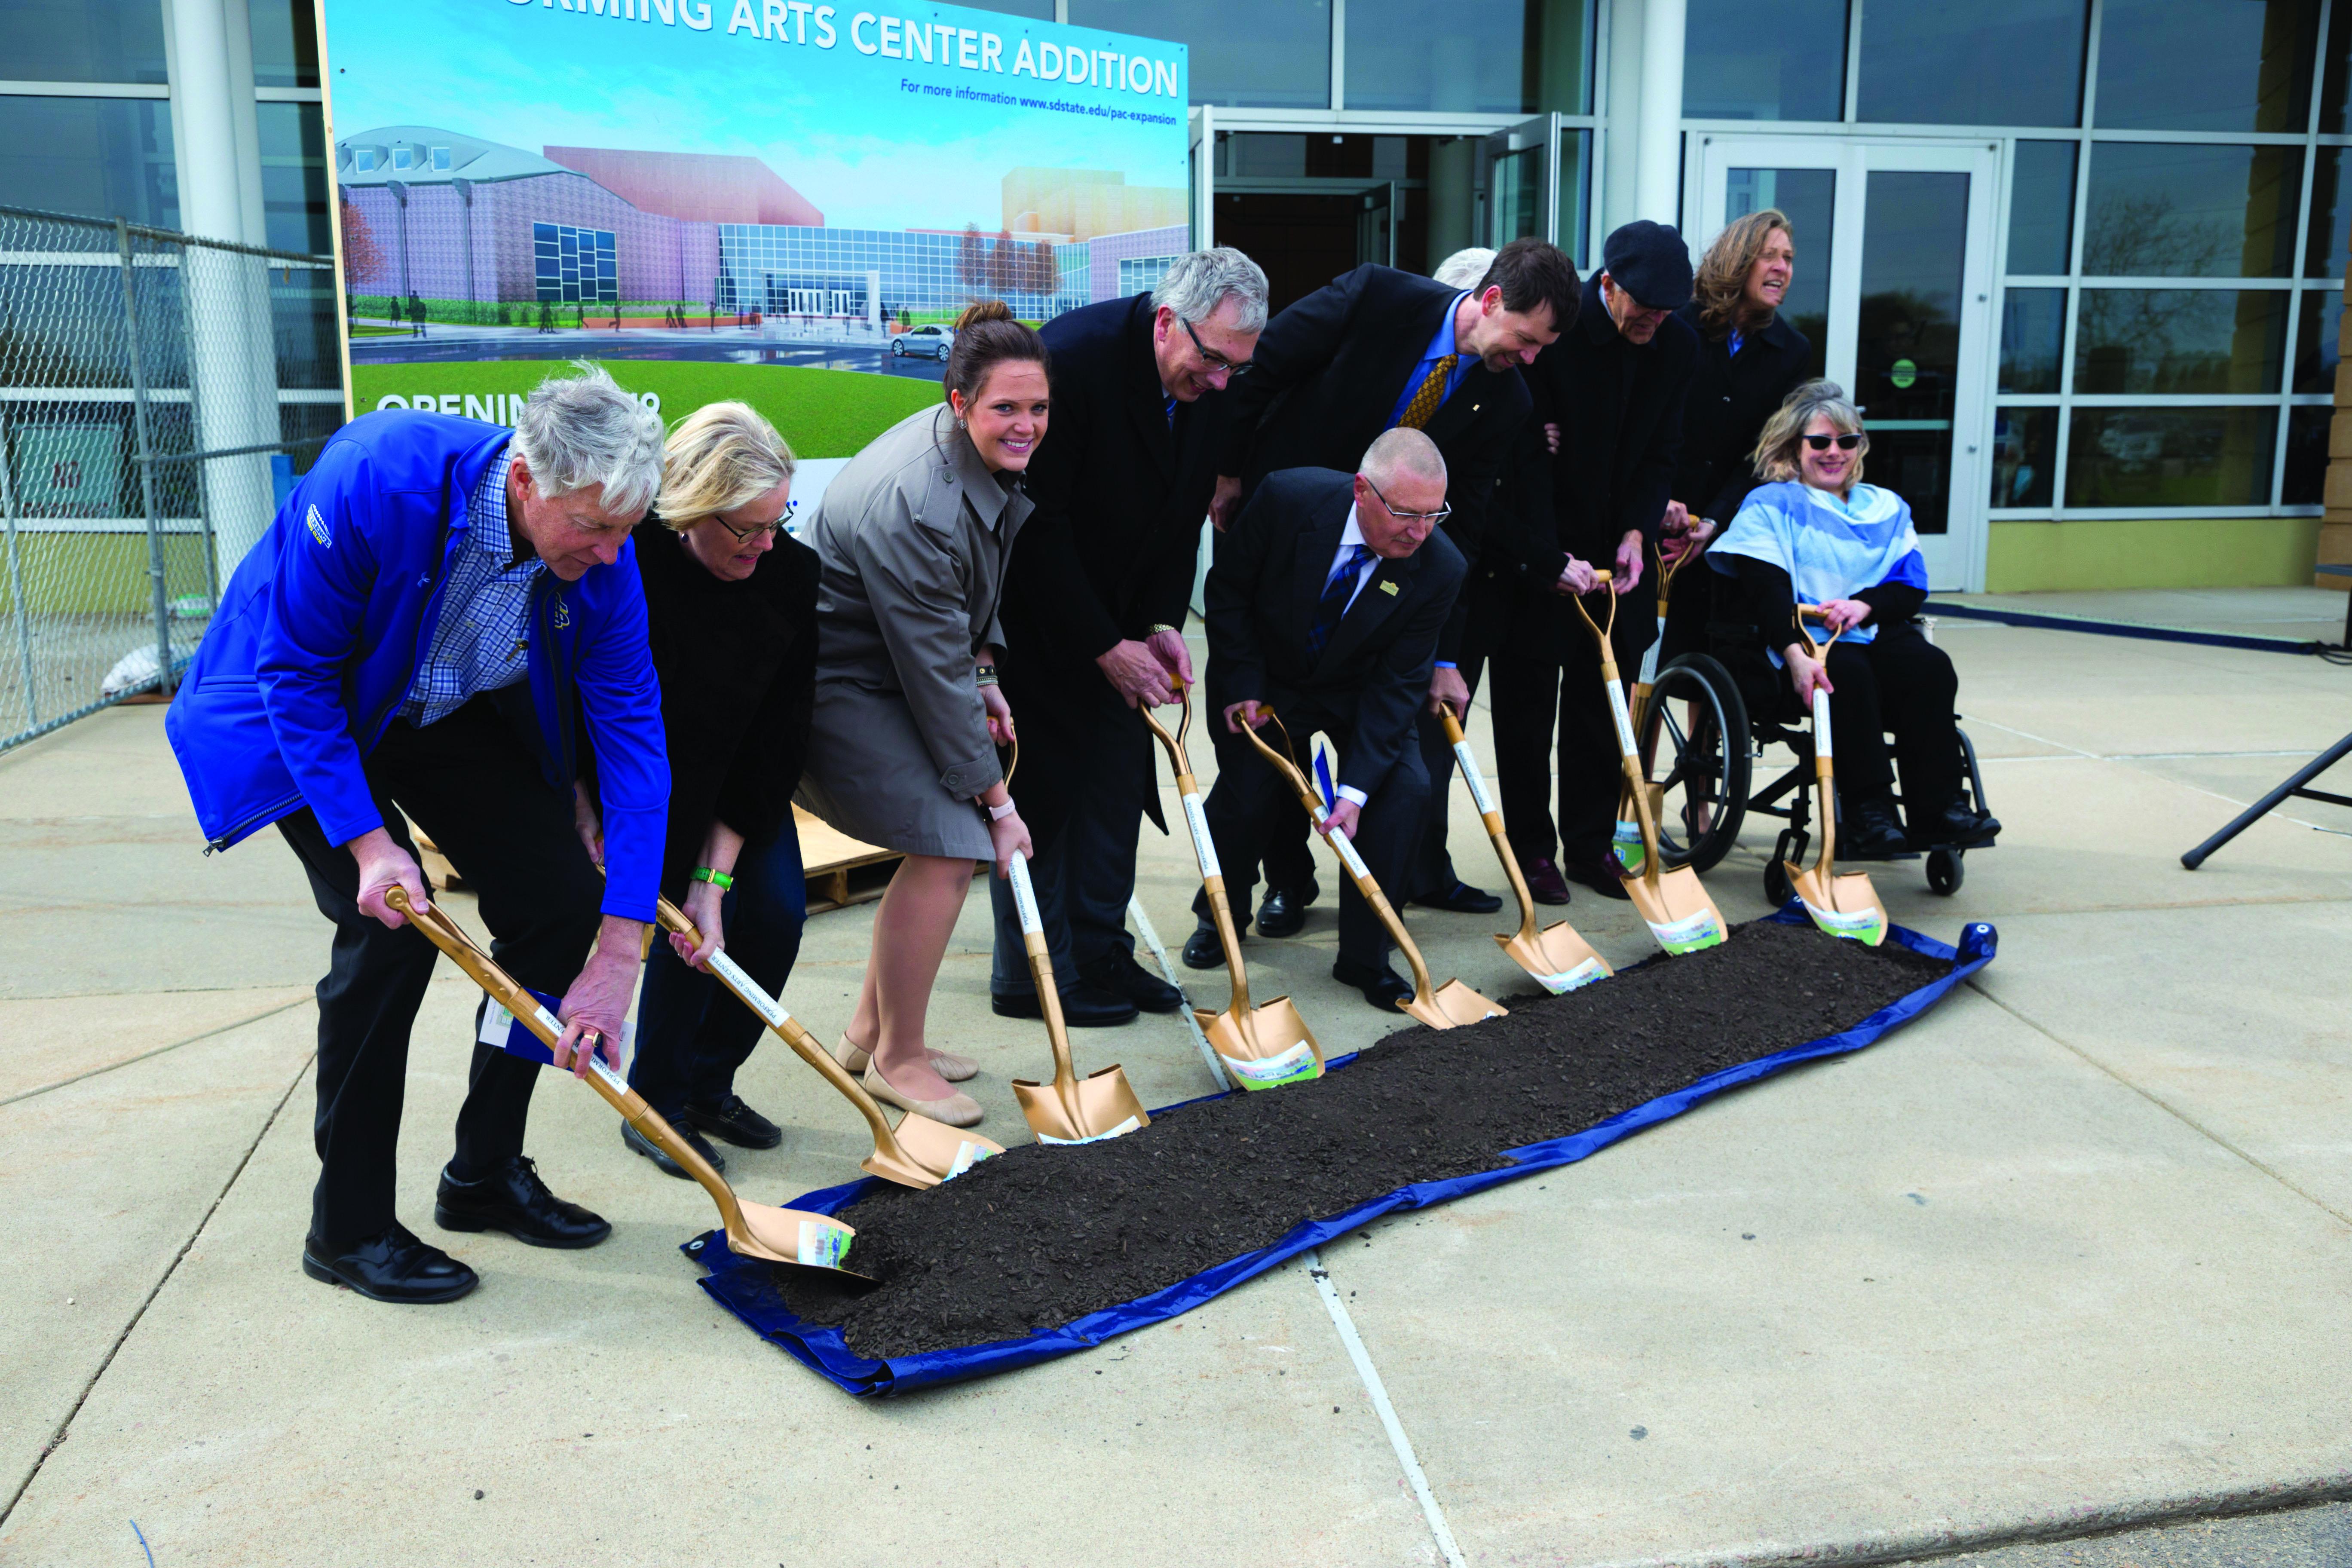 Groundbreaking for the Performing Arts Center expansion